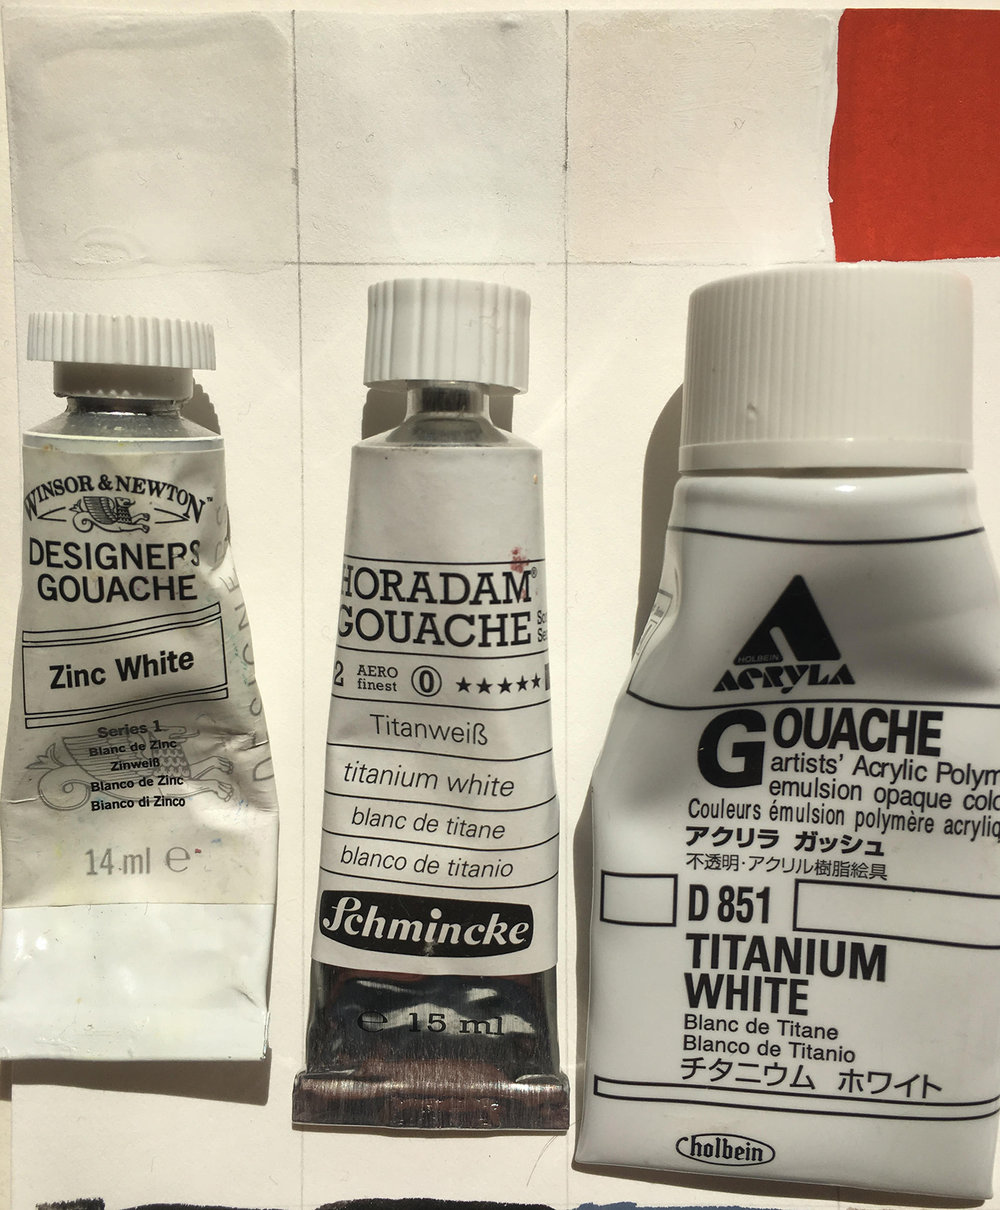 The Horadam goauche seems to be the most pure white. I think my brush had a tinge of pink still for the Acryla - so it is actually probably whiter than this pic. I find whites the hardest. They are always a bit chunkier than other colors. The acryla is very smooth but does not mix well with other brands.